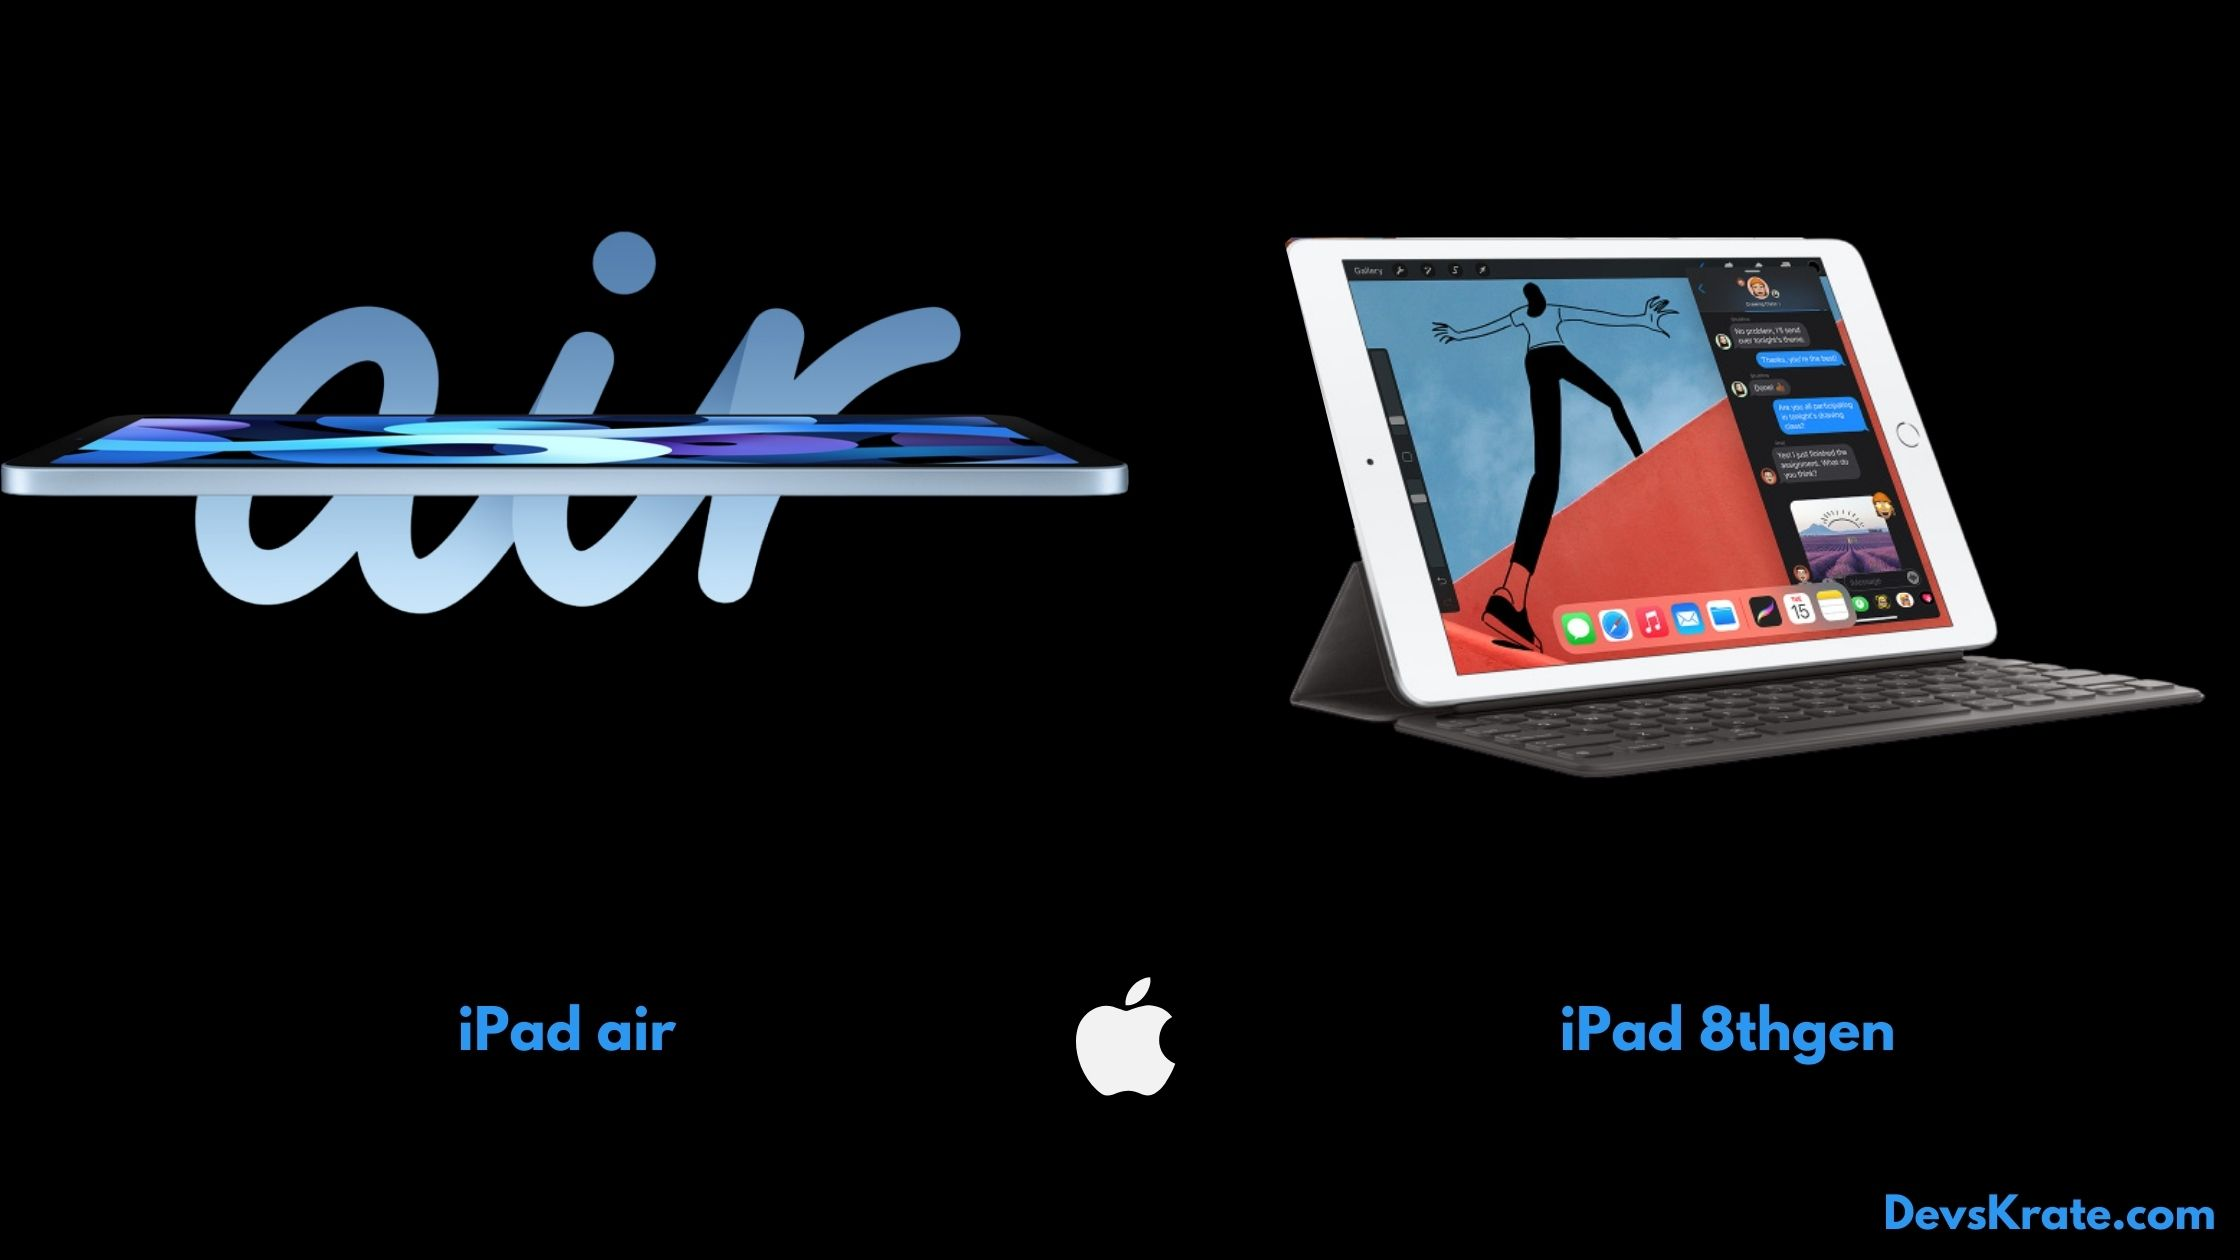 Apple iPad air and ipad 8th gen details, specs and features.